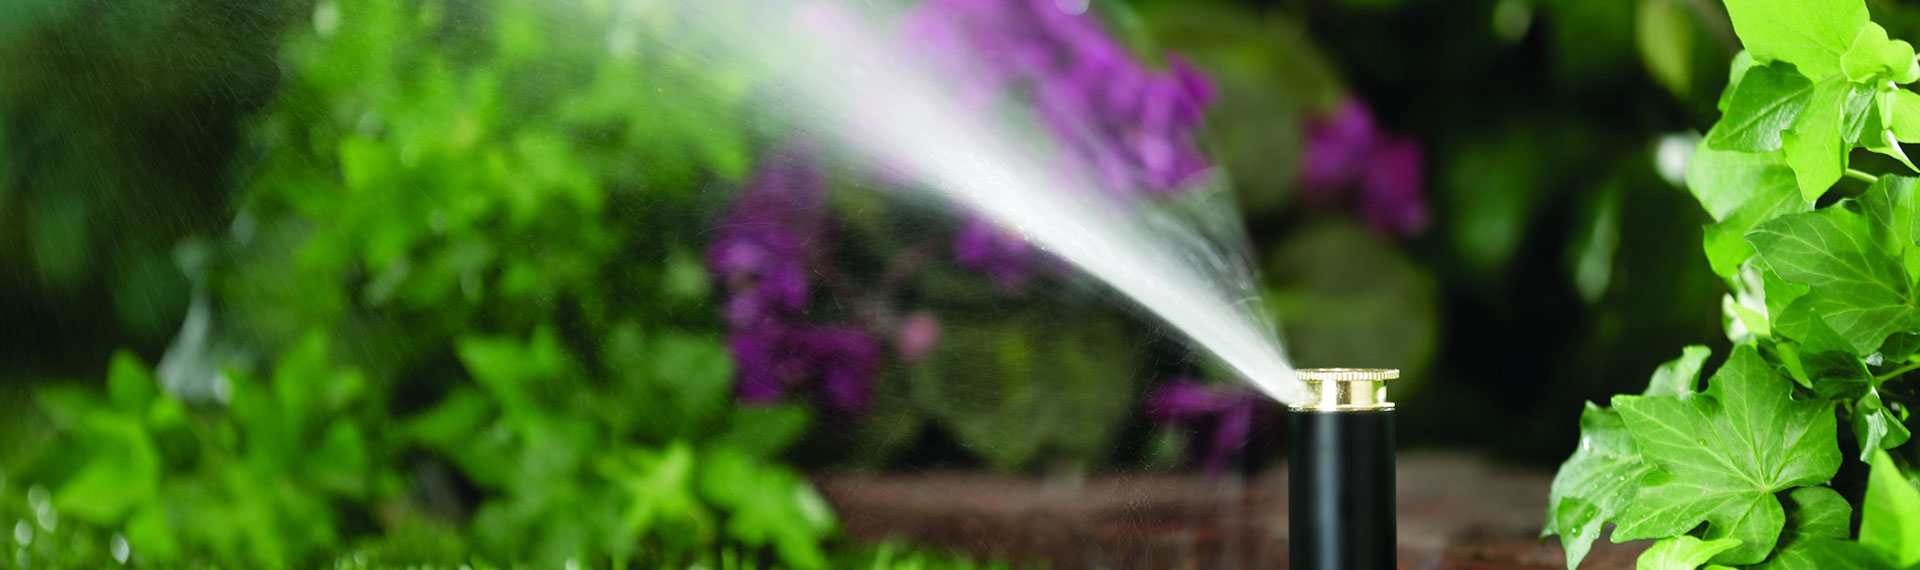 garden-watering-systems